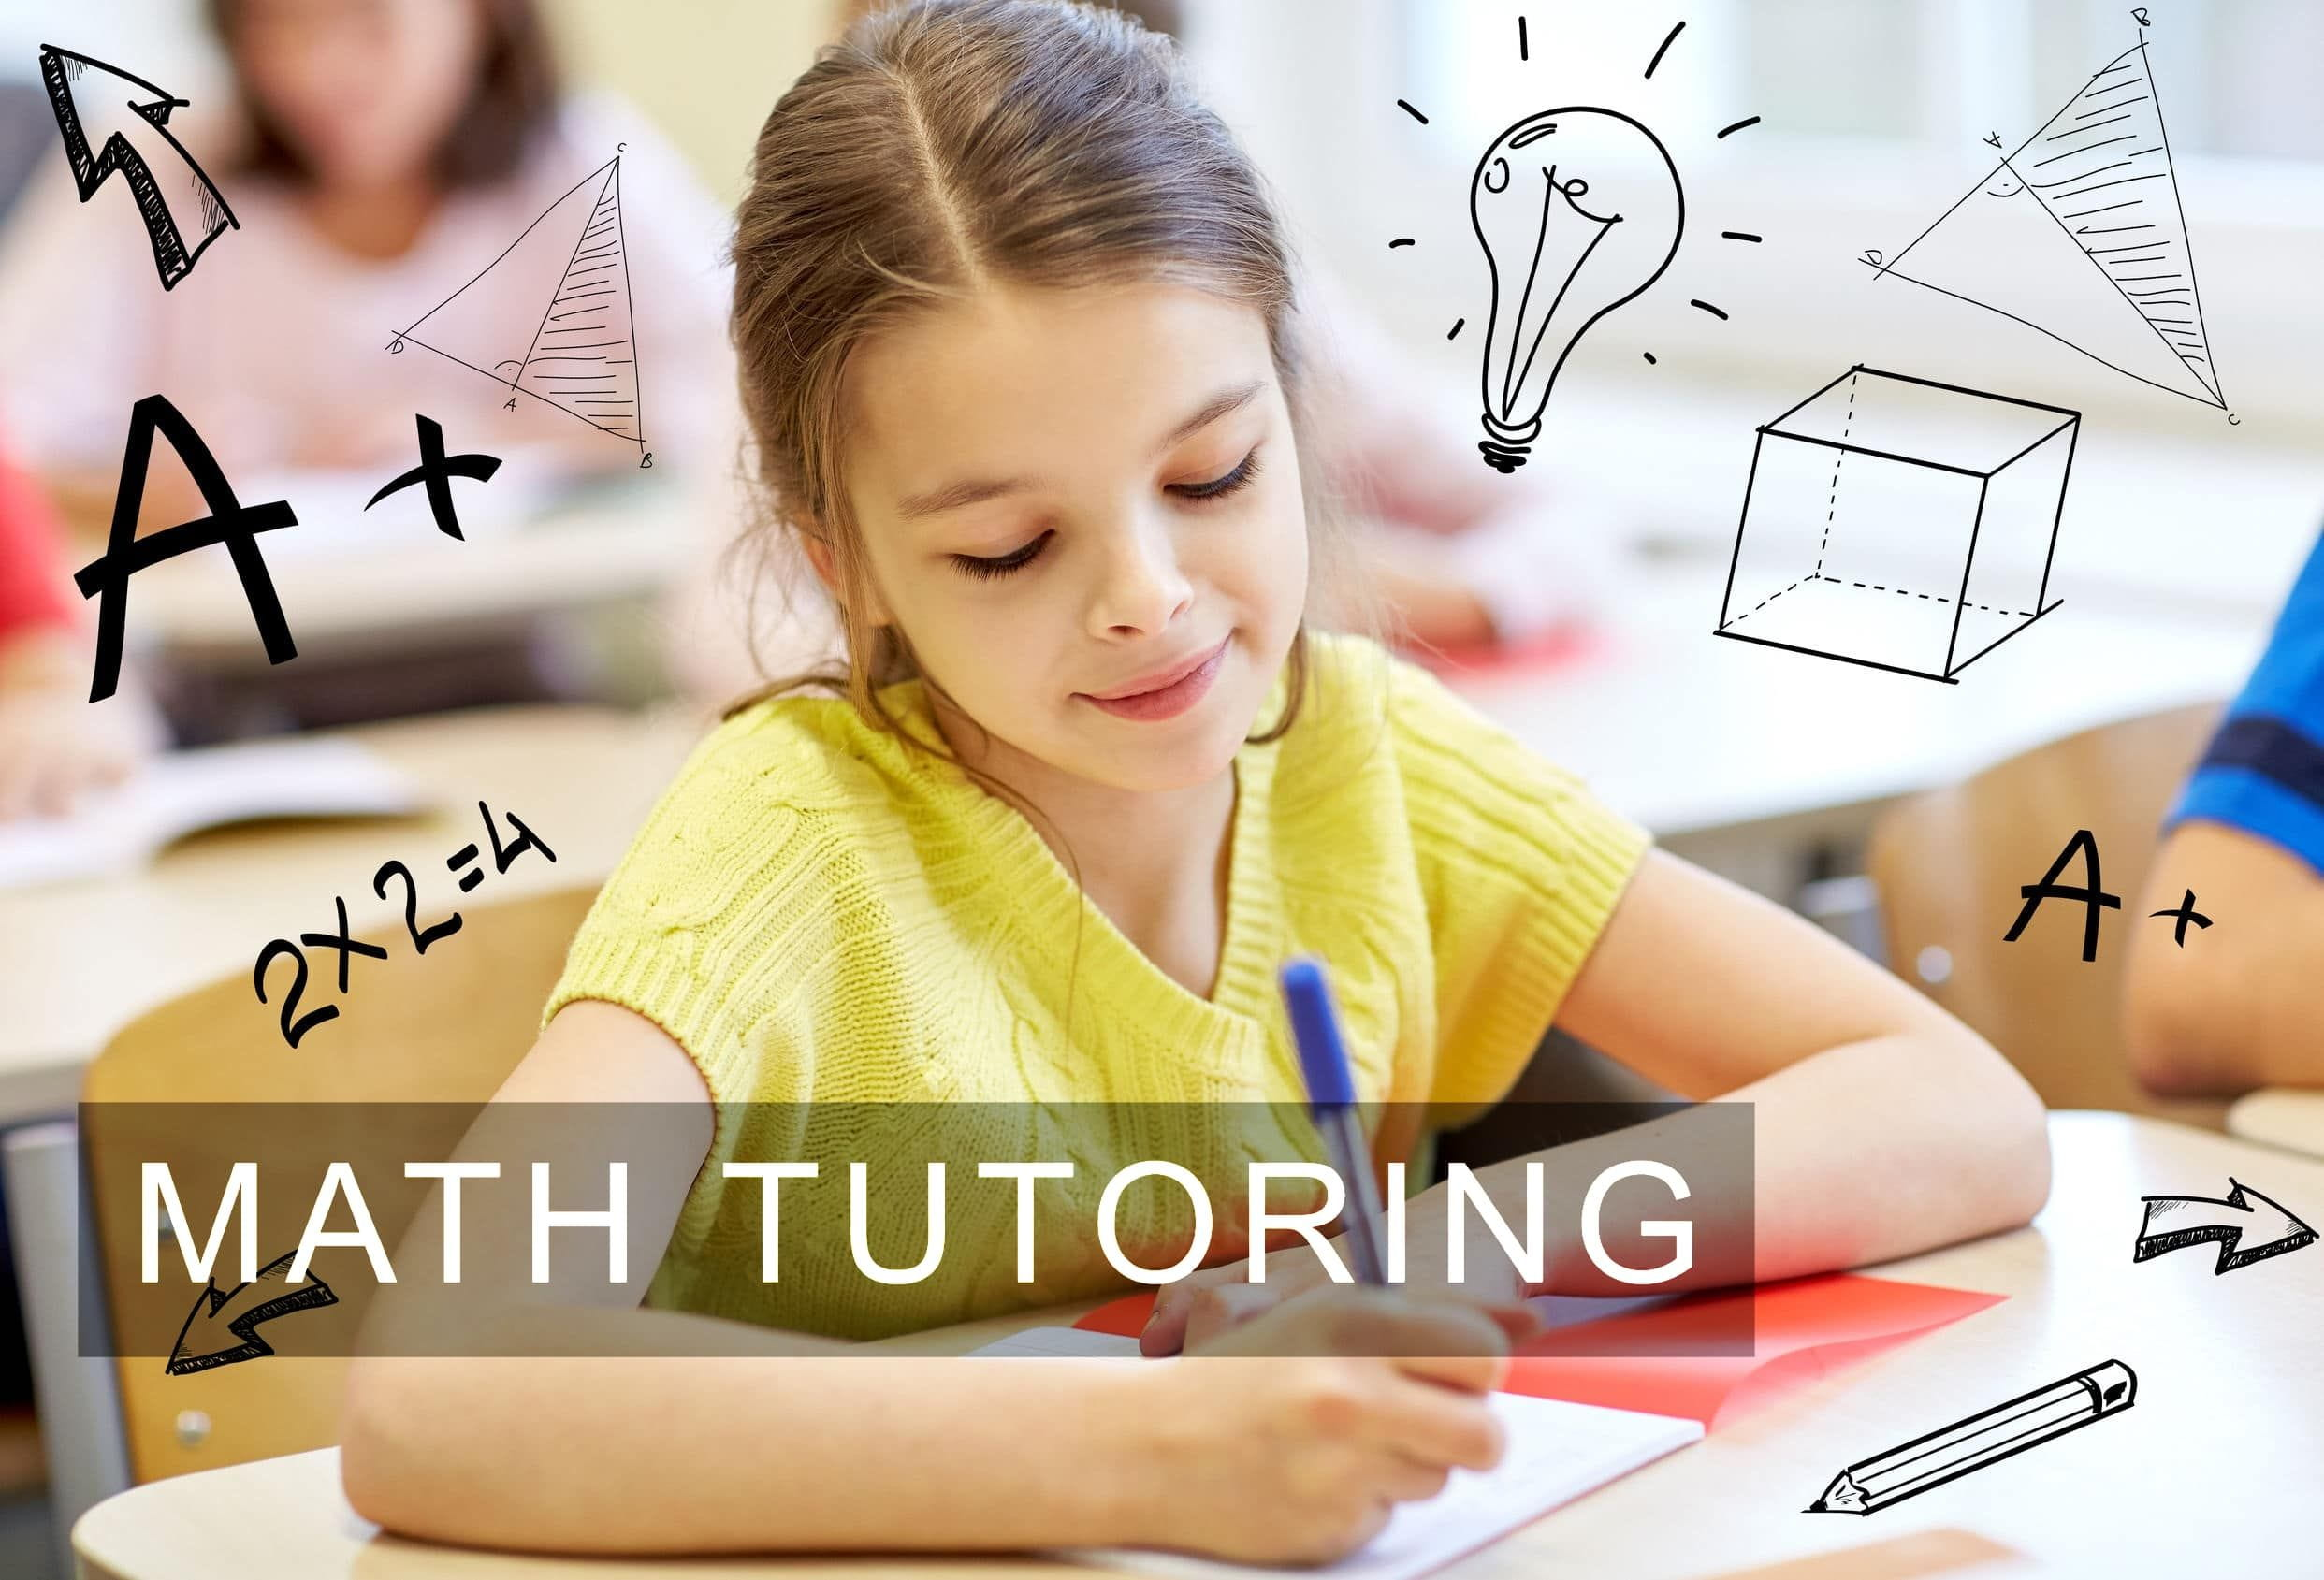 ib math and ap calculus tutoring with hack your course ap and ib tutoring serivce